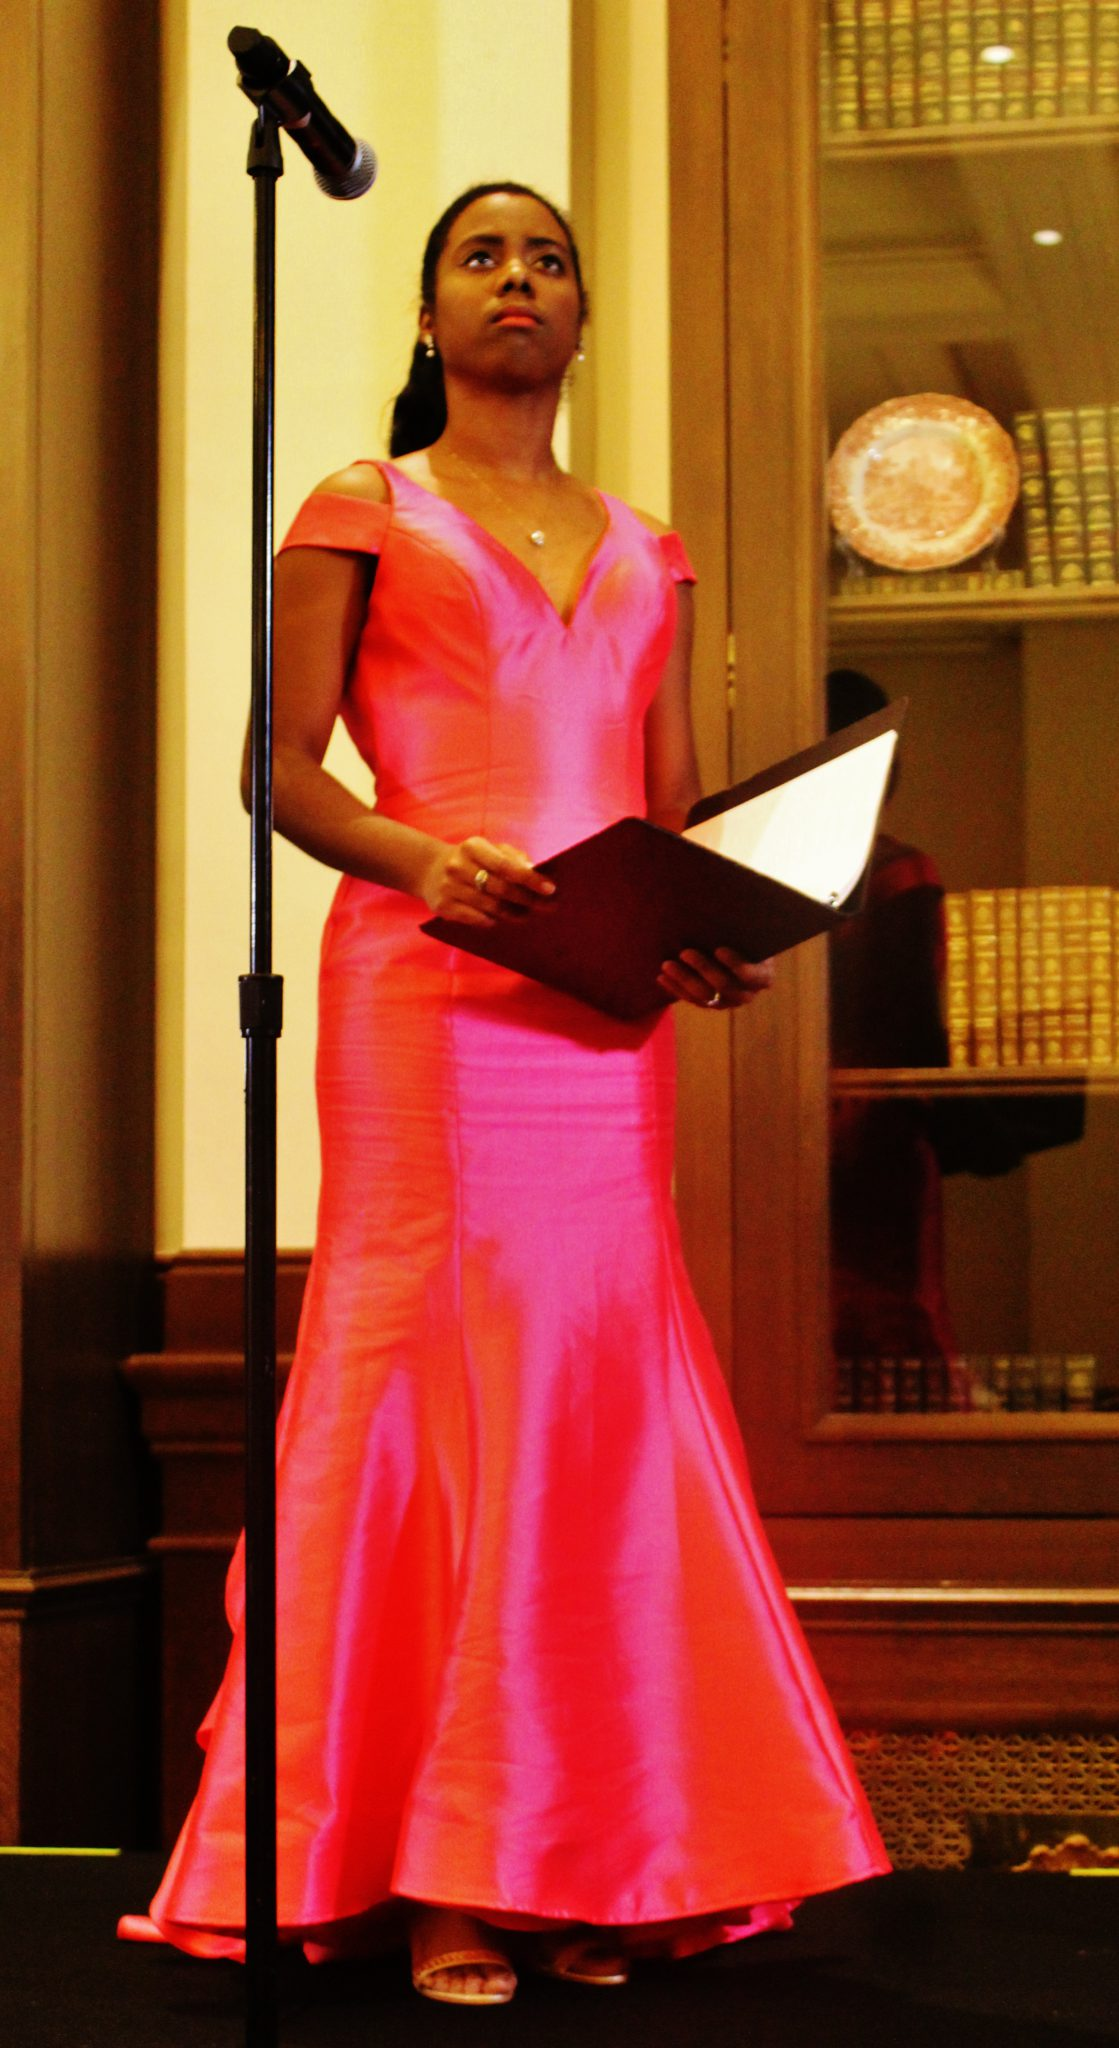 Kyaunnee Richardson in the lead role as Esther brought the commanding presence of royalty and glamour to the Trump International Hotel